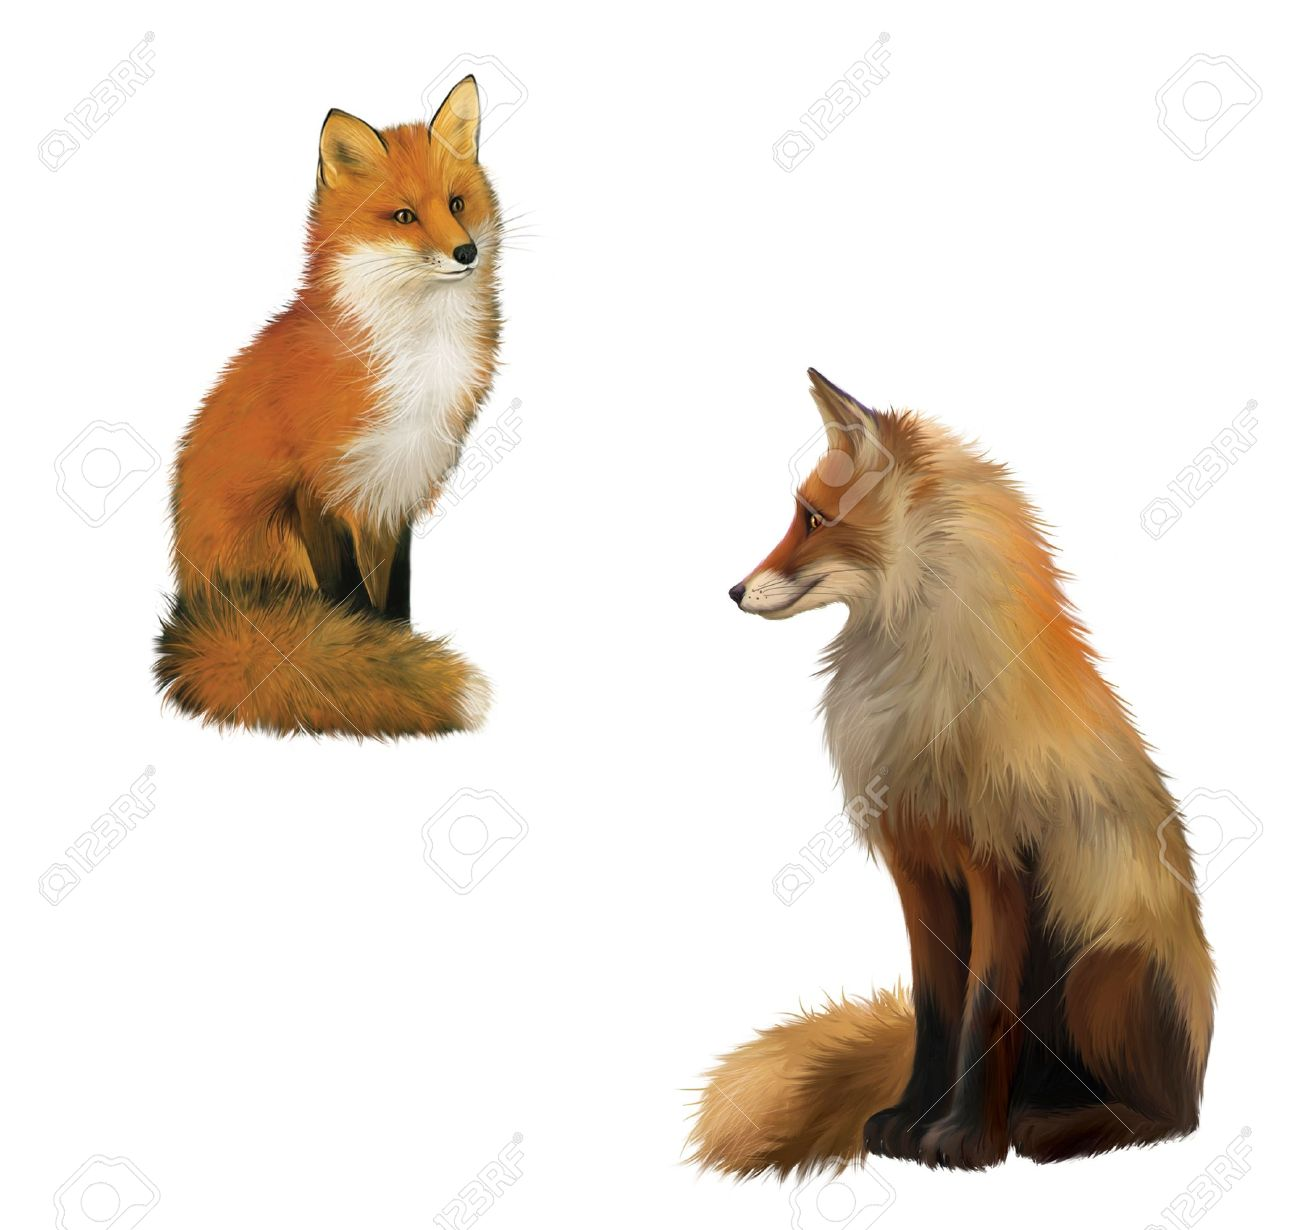 reynard the fox stock photos royalty free reynard the fox images